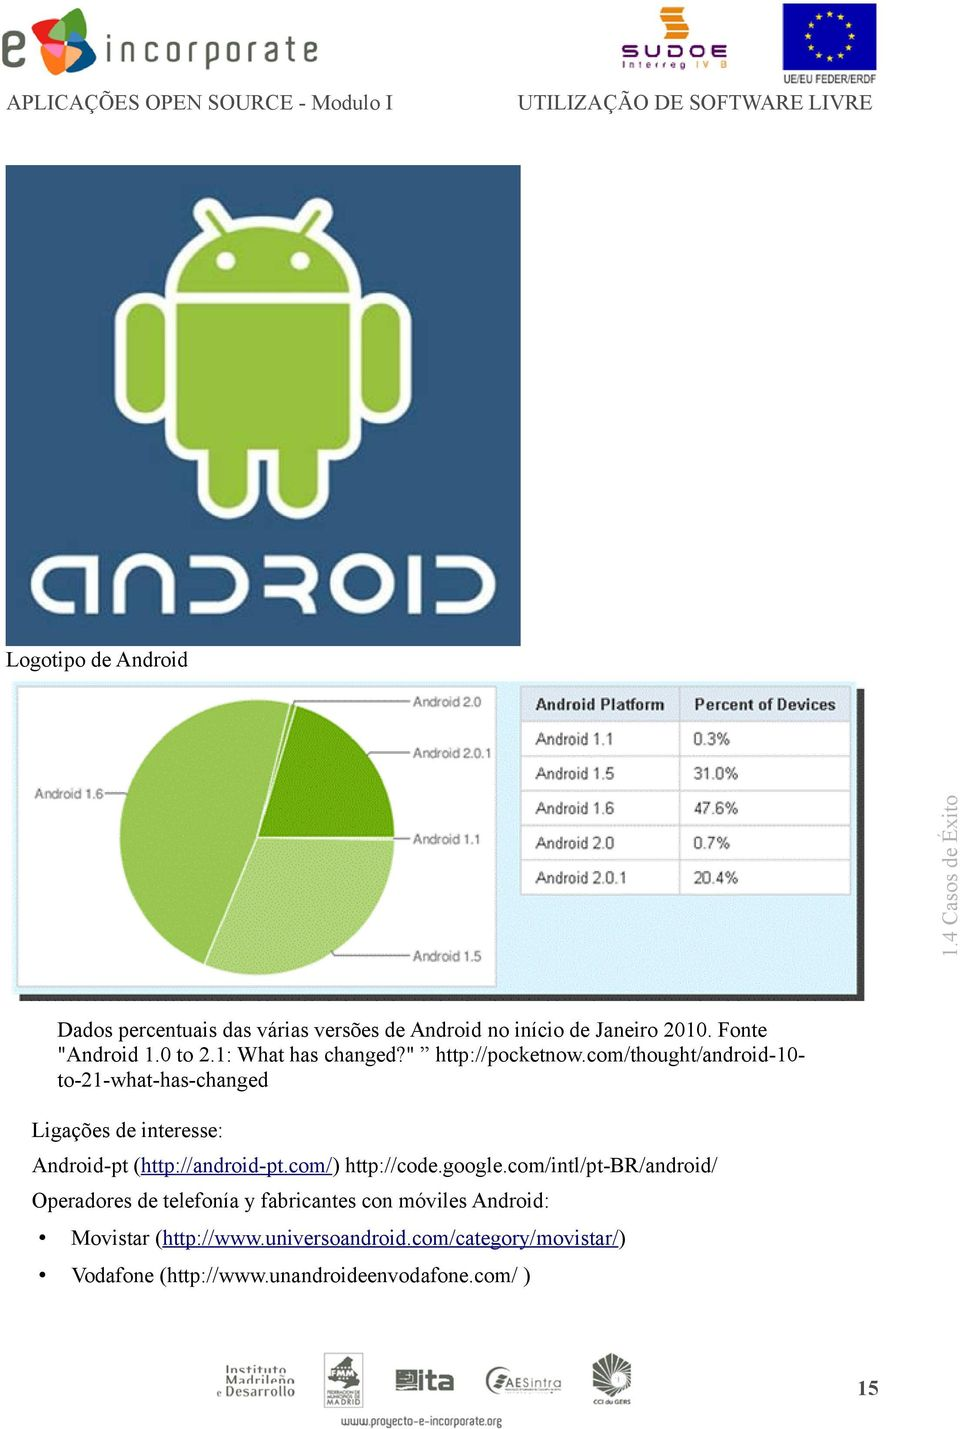 com/thought/android-10to-21-what-has-changed Ligações de interesse: Android-pt (http://android-pt.com/) http://code.google.